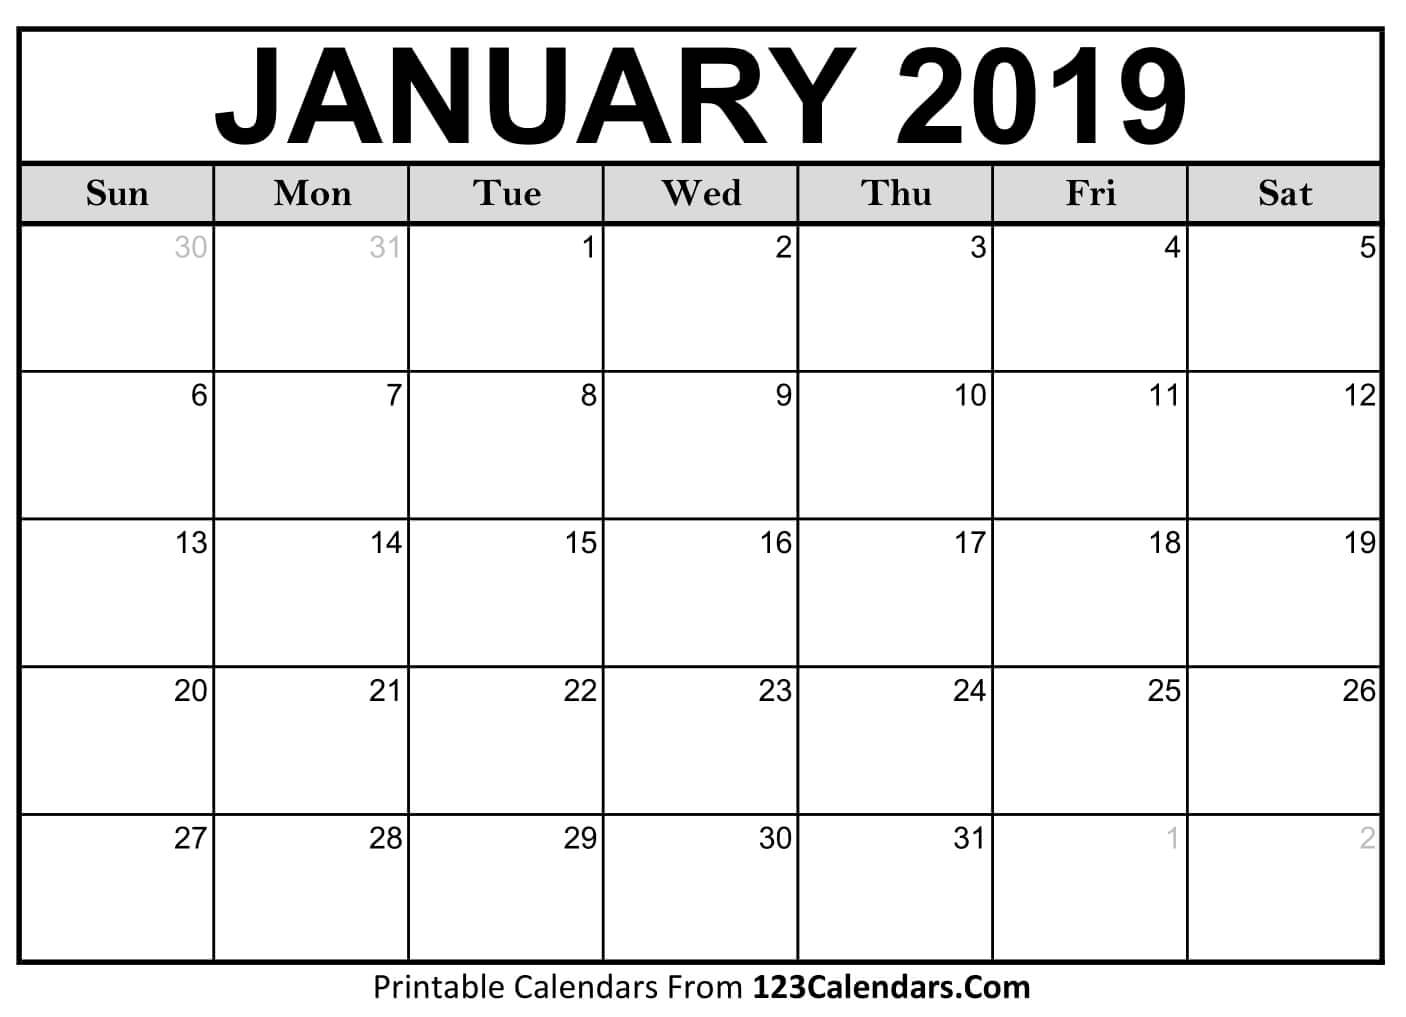 Get Printable Calendar 2019 December Legal Size ⋆ The Best